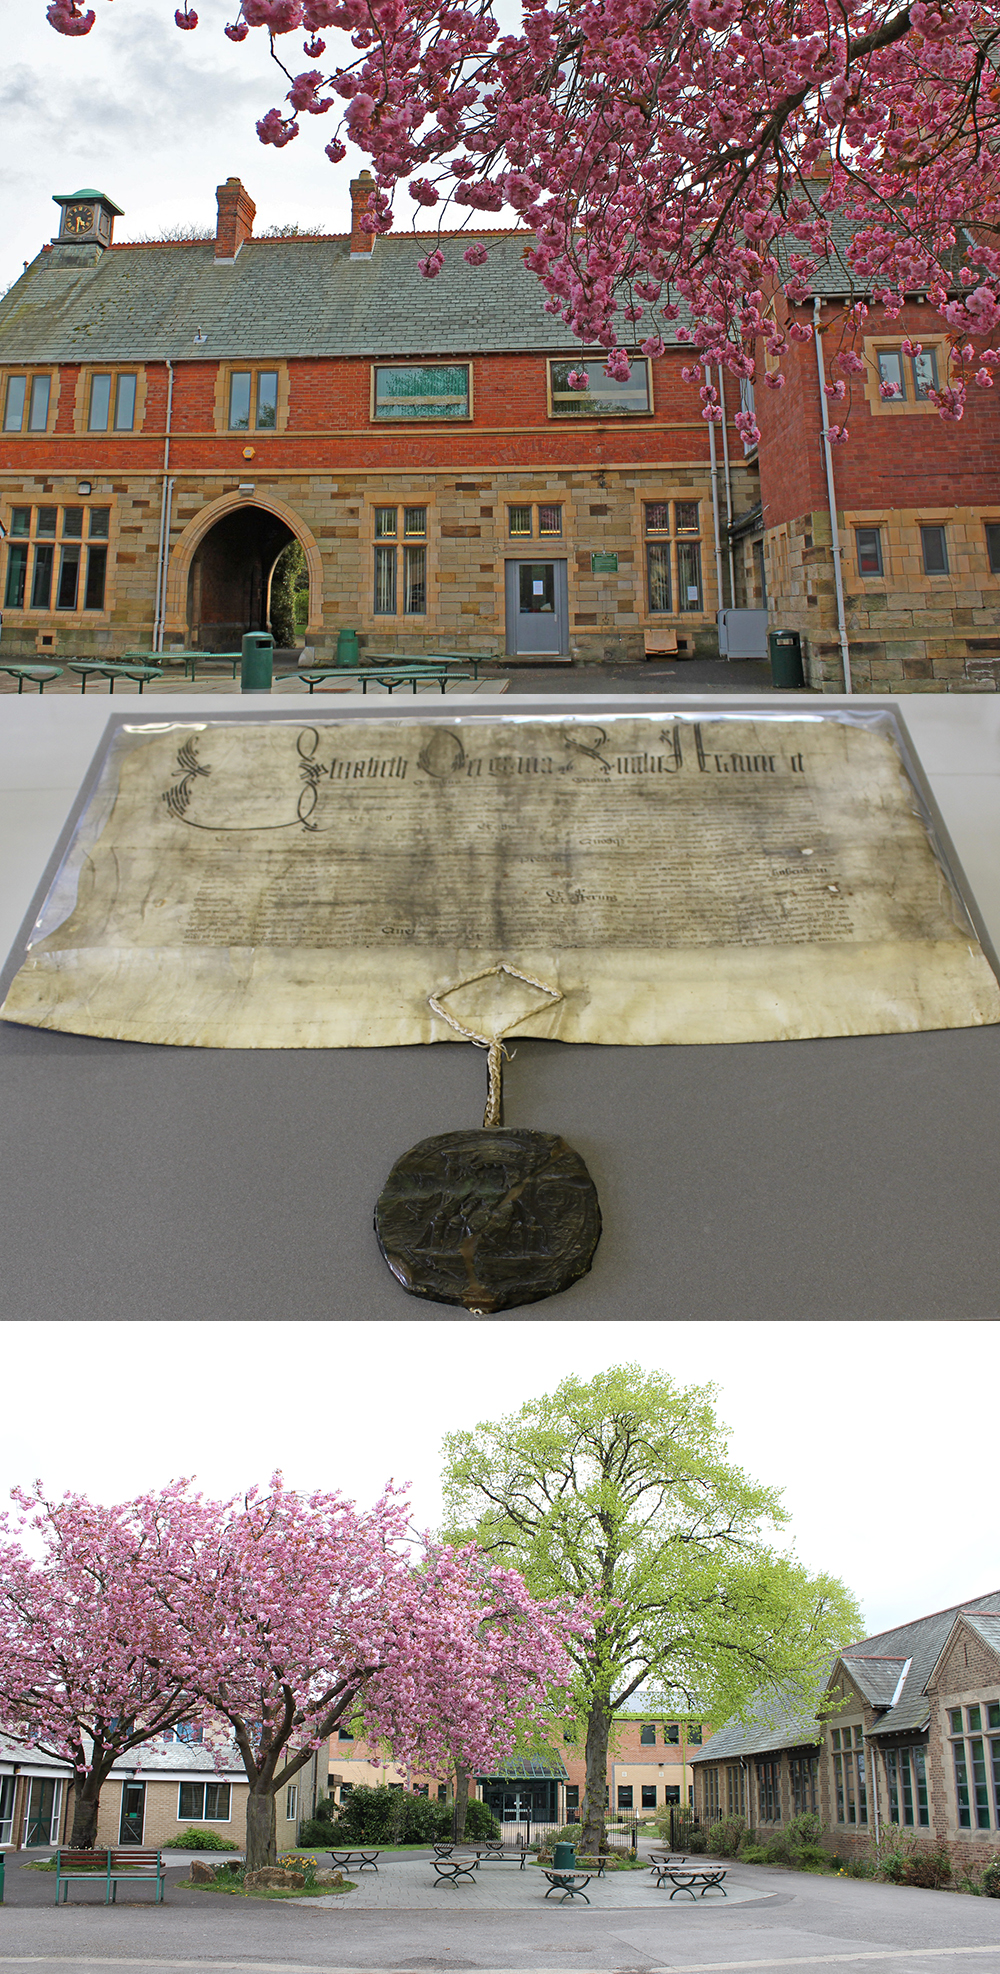 A montage of three photos; a red brich school building, a parchment charter with wax seal, and a view of a courtyard between buildings with trees with pink blossom.